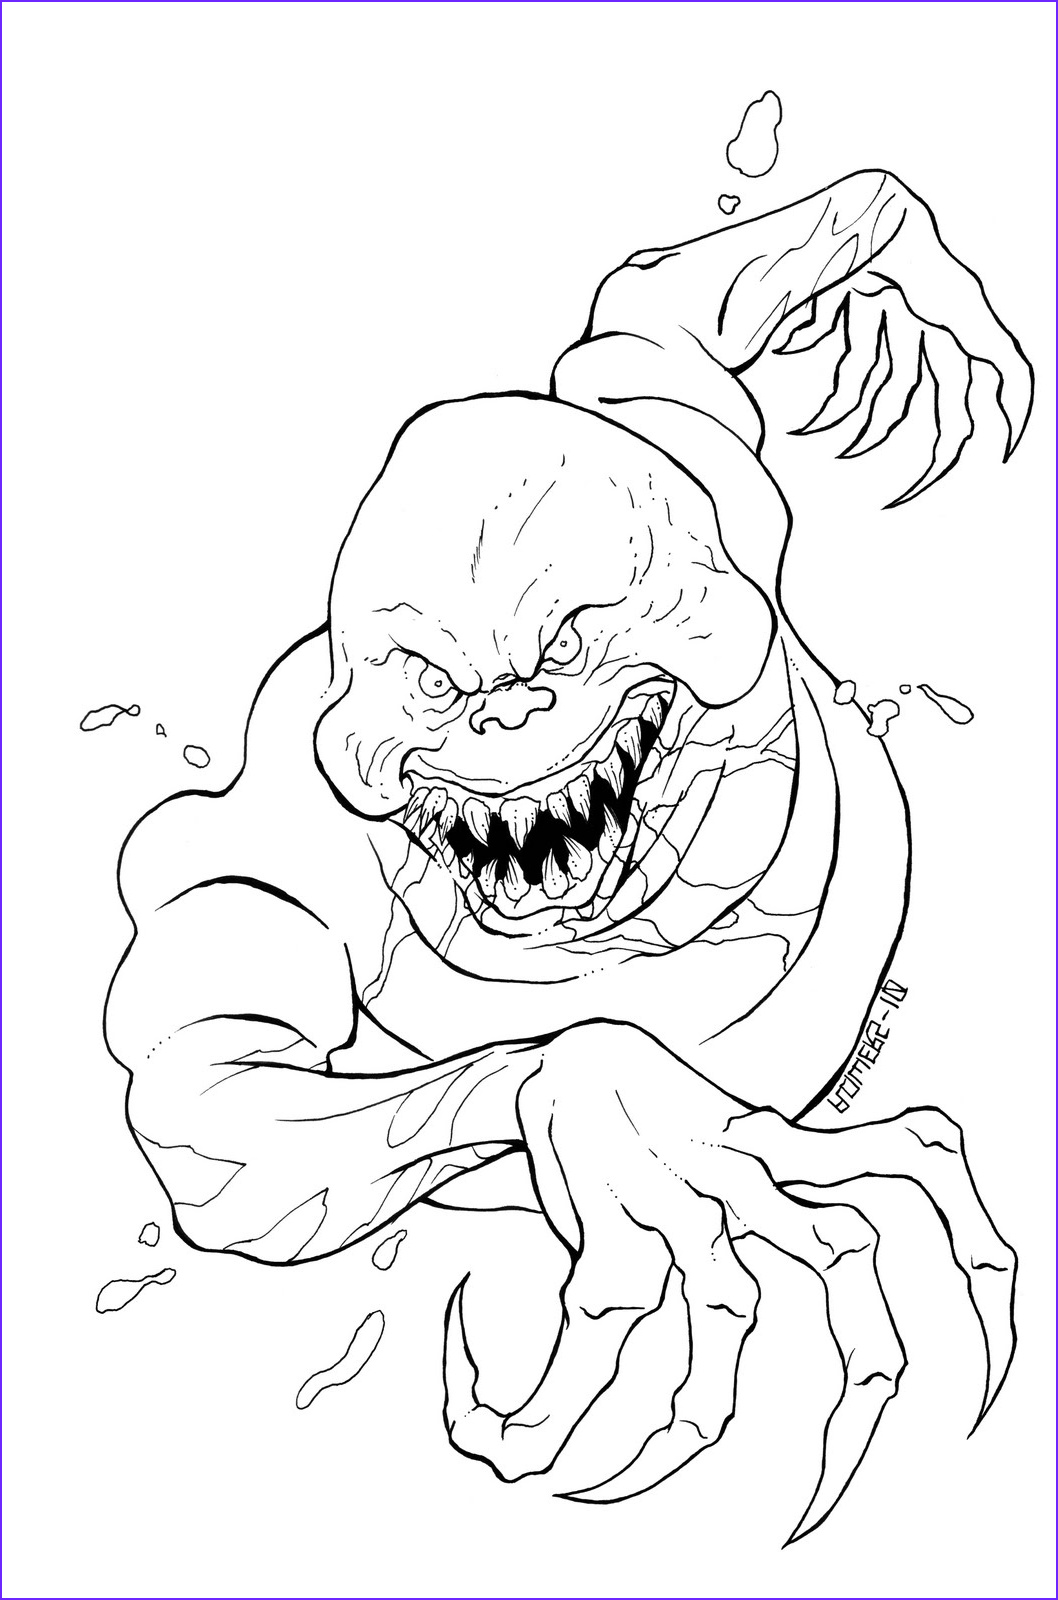 Scarey Coloring Page Beautiful Image Scary Coloring Pages Best Coloring Pages for Kids